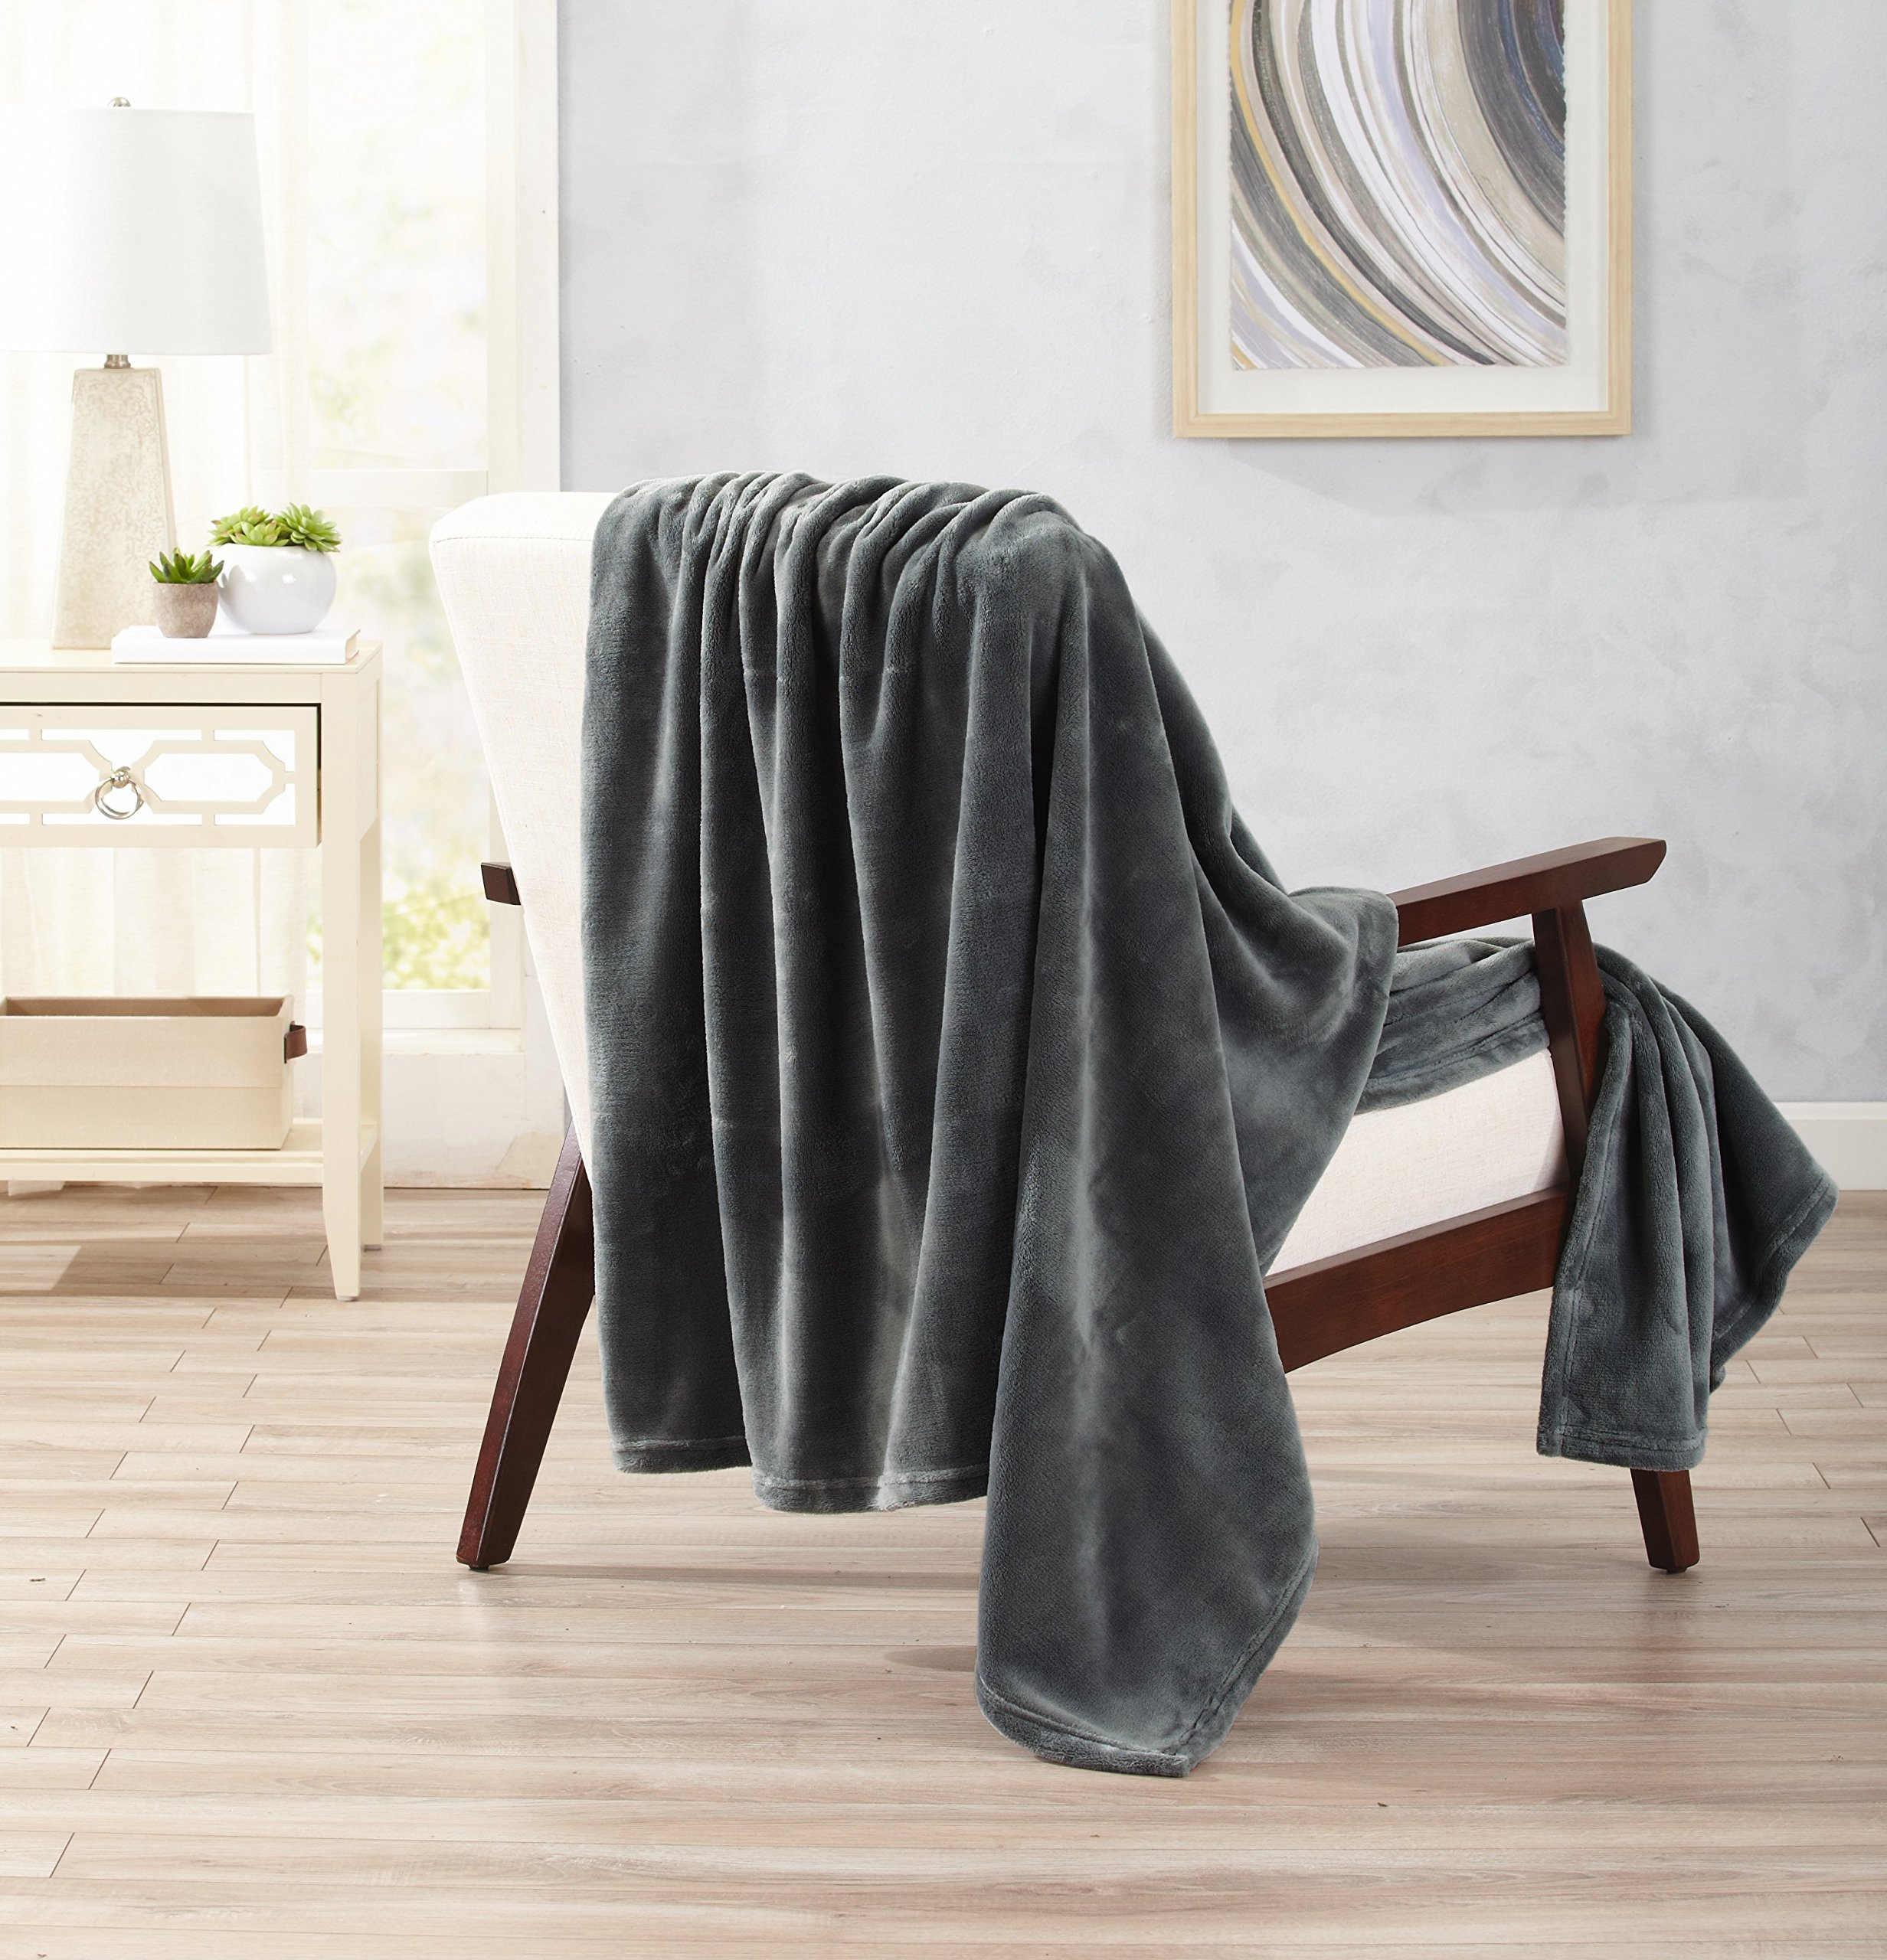 Home Fashion Designs Ultra Velvet Plush Super Soft Oversize Throw Blanket. Lightweight, Warm Blanket in Solid Colors. Marlo Collection Brand. (Steel Grey)